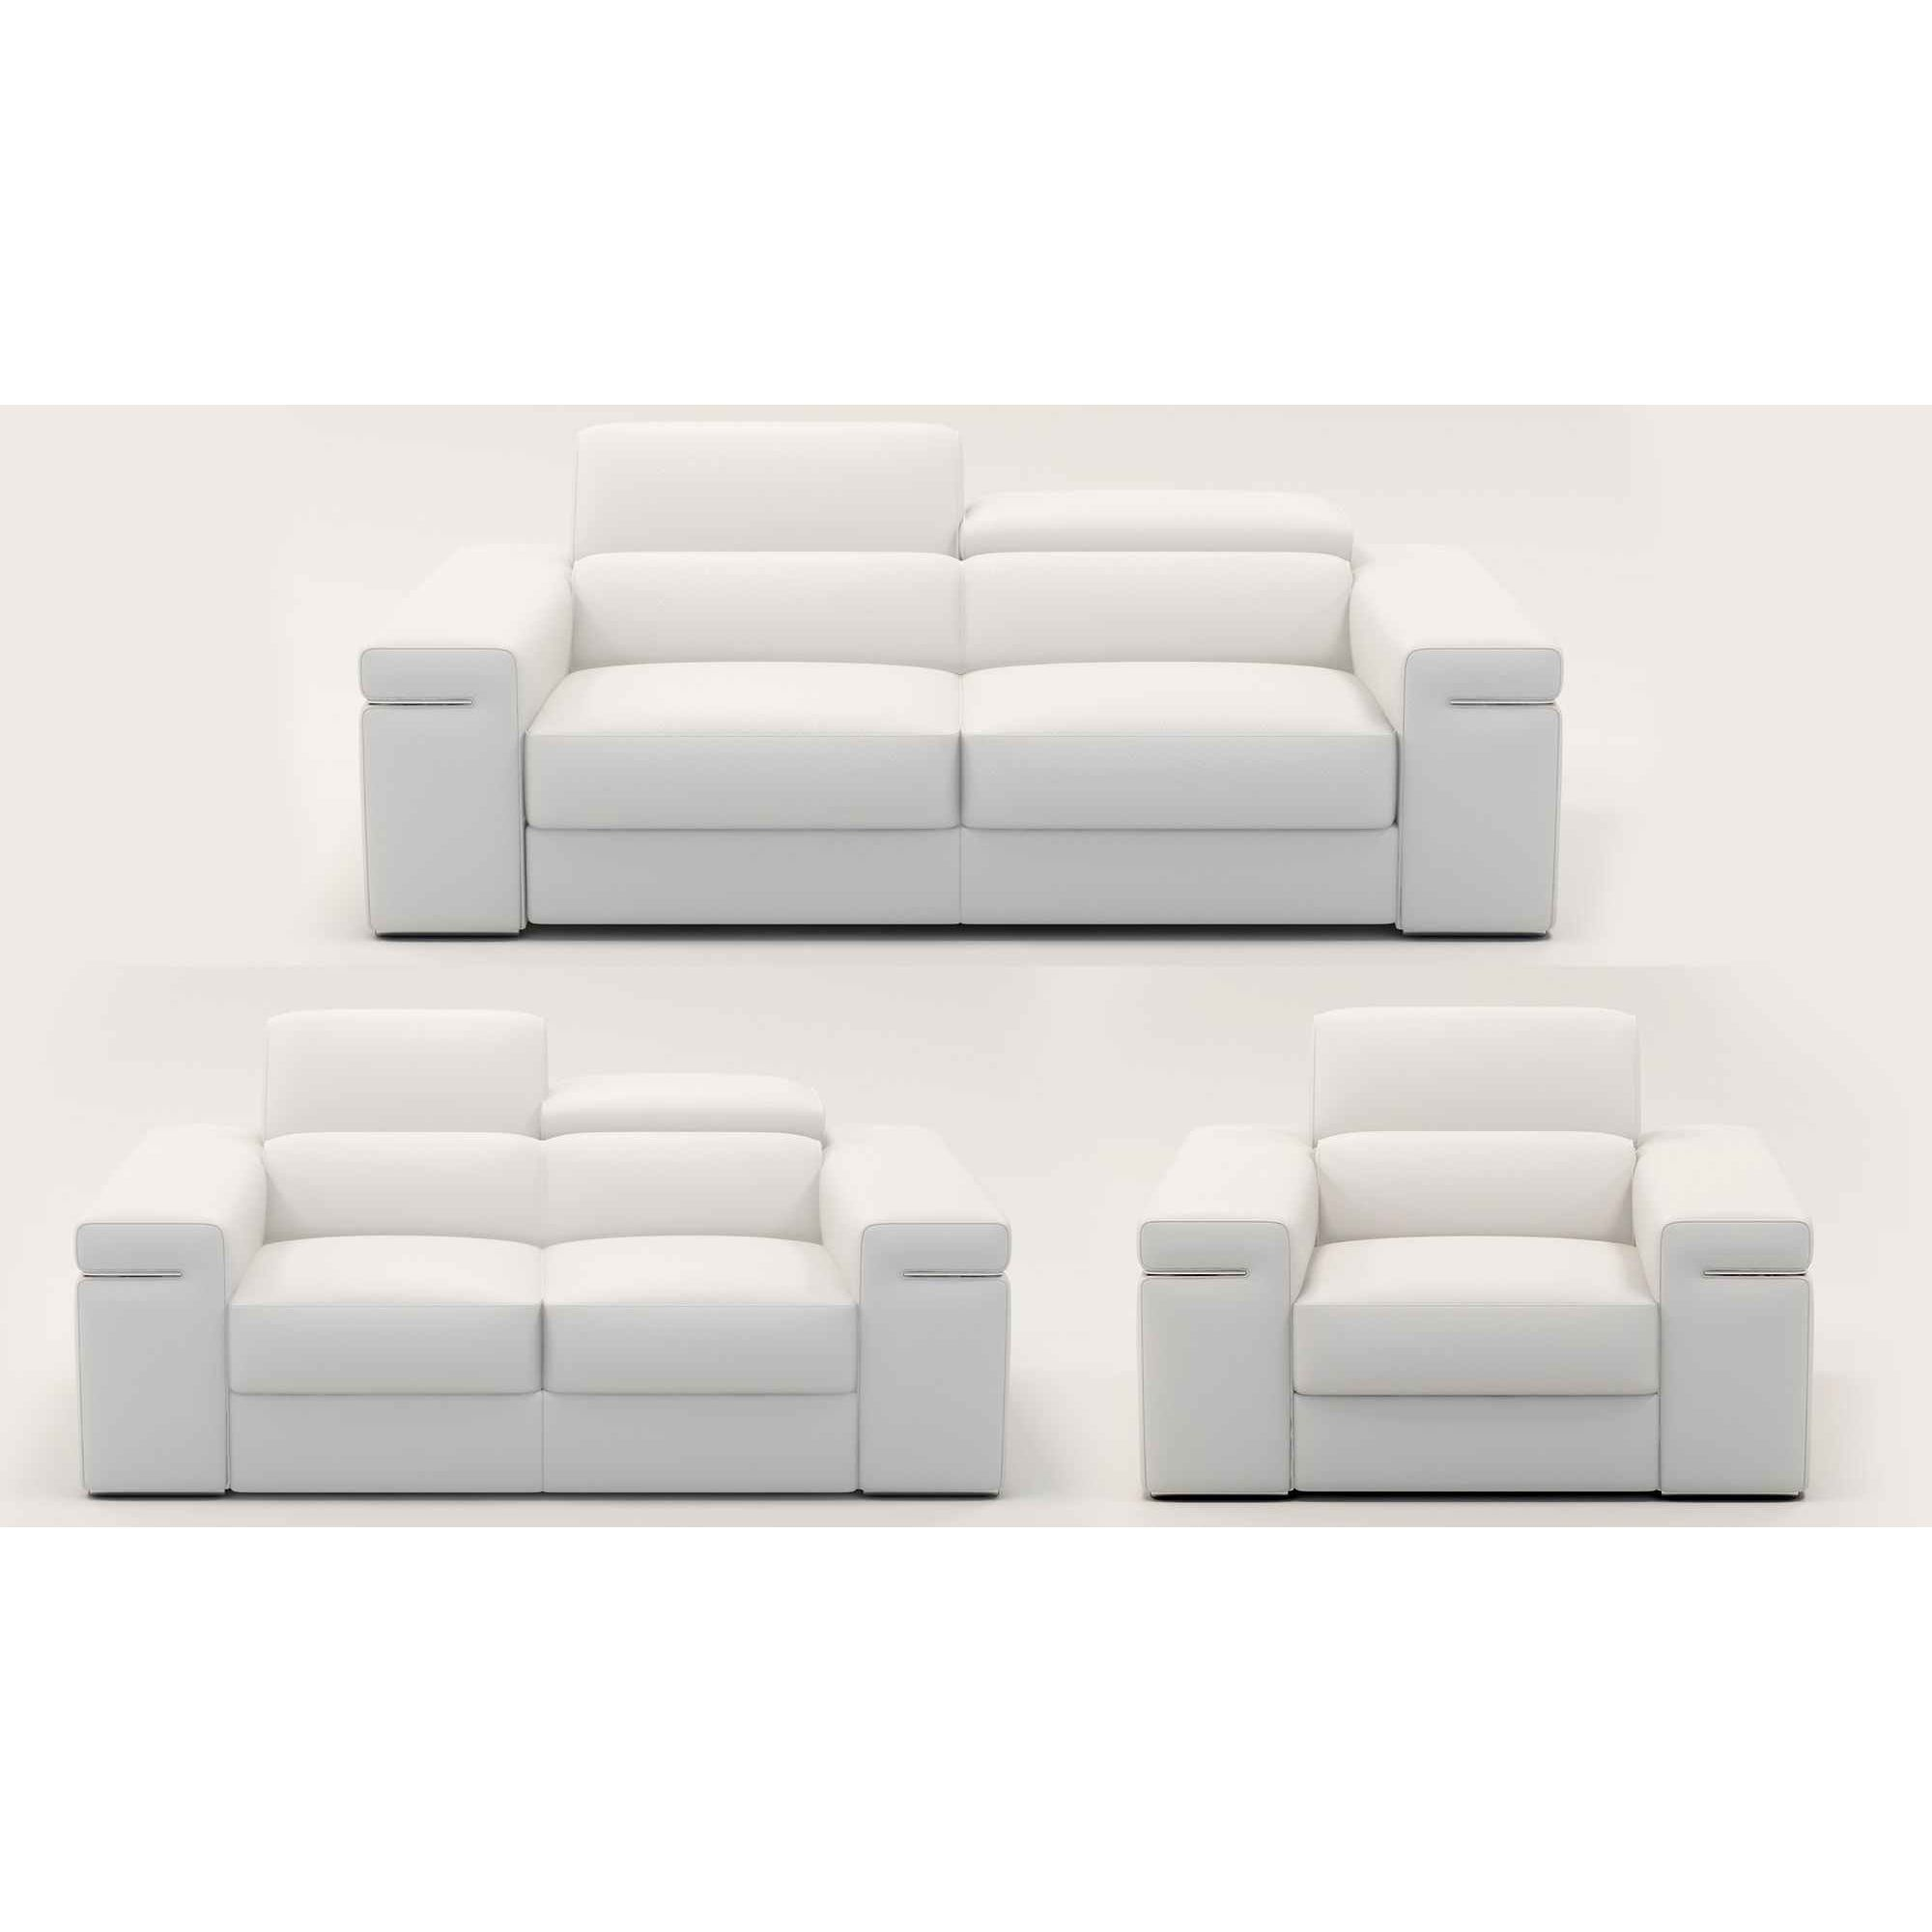 deco in 2 ensemble canape 3 2 1 places en cuir blanc can 3 2 1 blanc